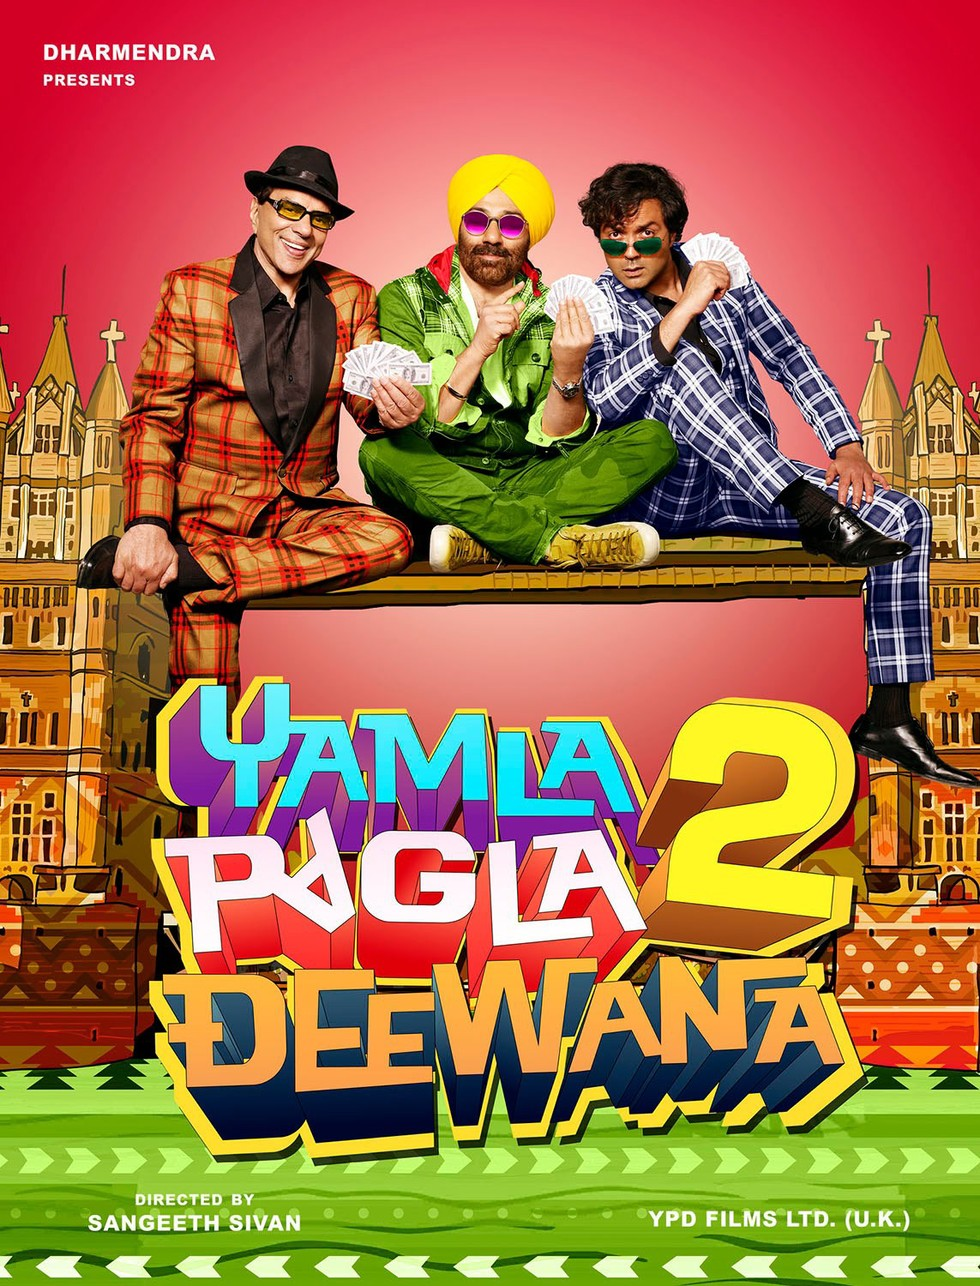 Yamla Pagla Deewana 2 - Movie Poster #3 (Large)